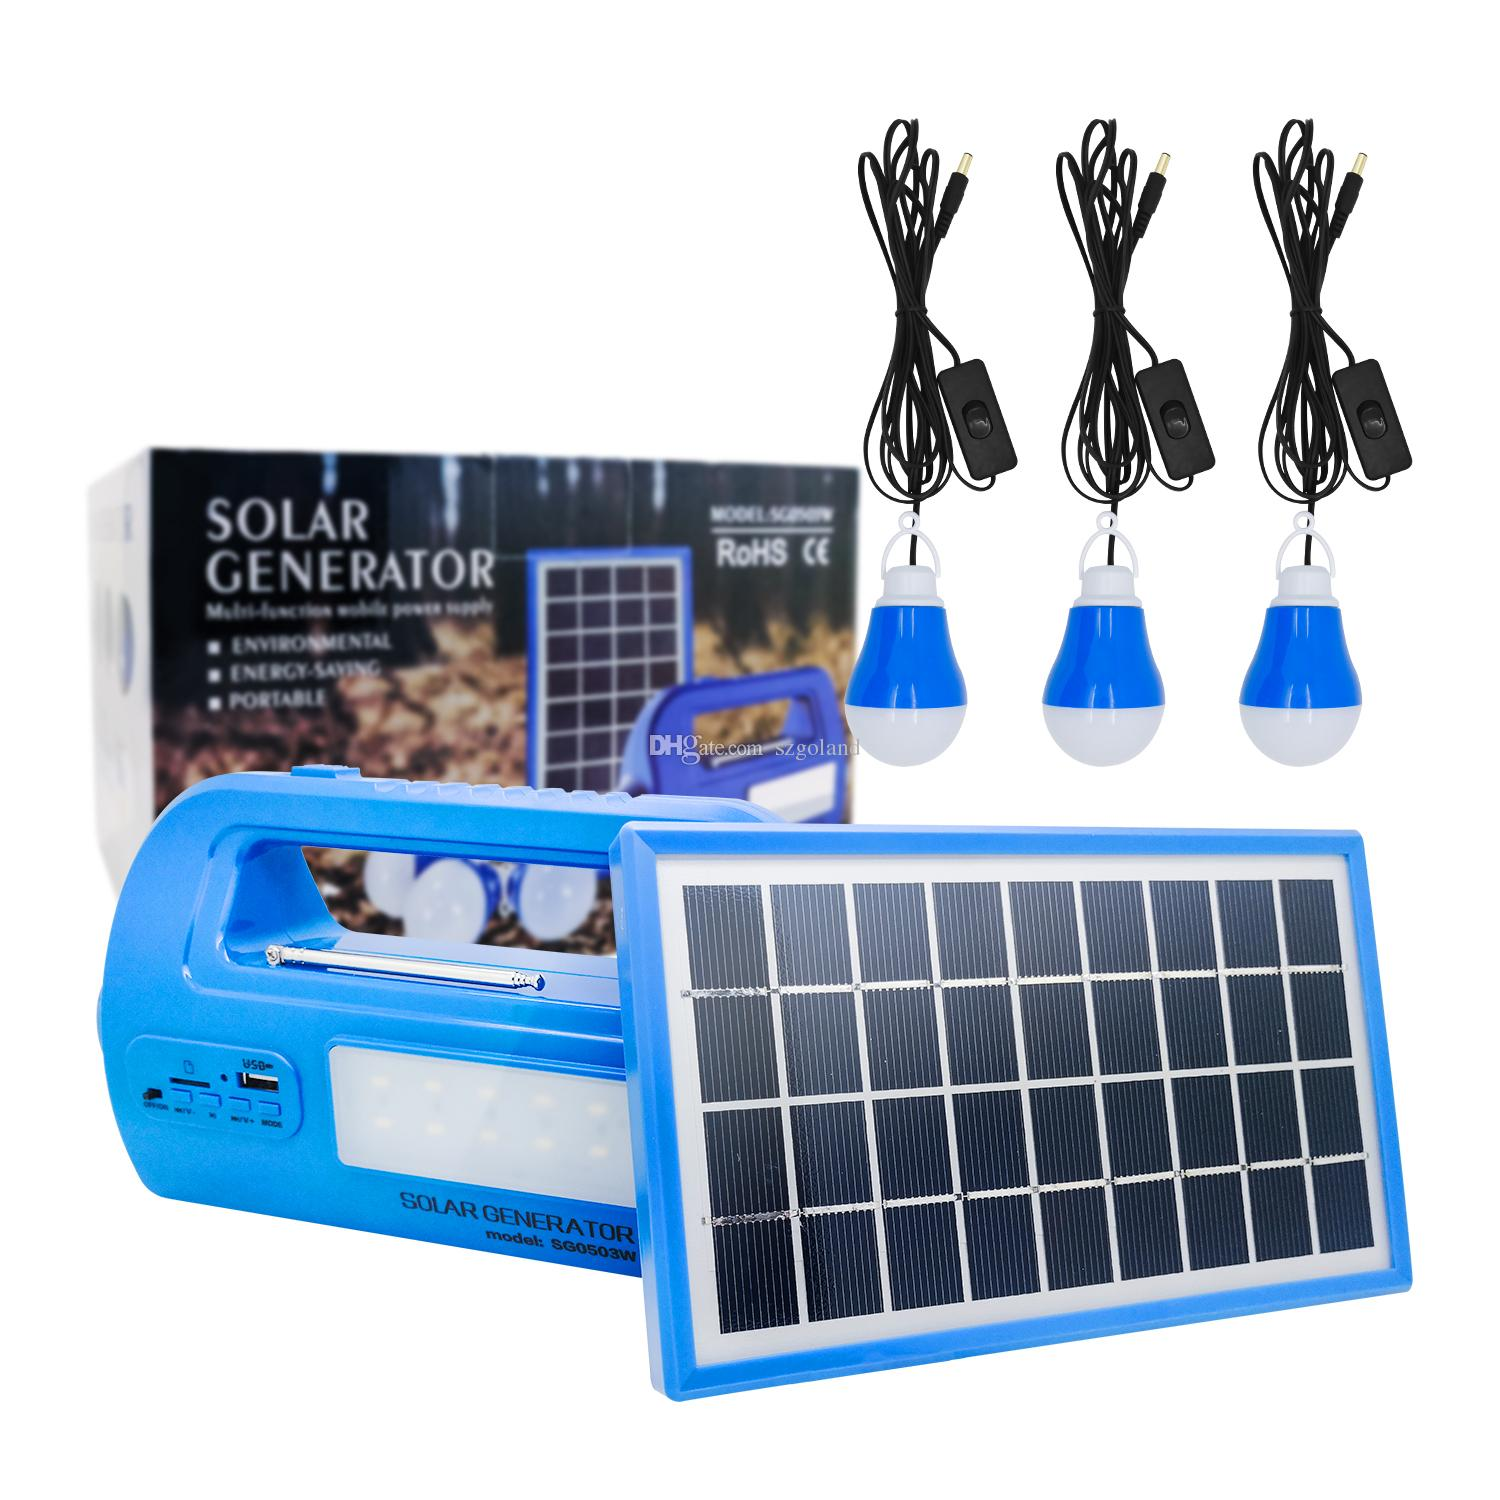 Ordinary Solar System Lighting Part - 14: Solar Lighting System Solar Panel Lighting Kit Home Dc System  Multifuncation Solar Generator With 3 Led Light Bulb And 2 Usb Charger Port  Wind Turbine ...